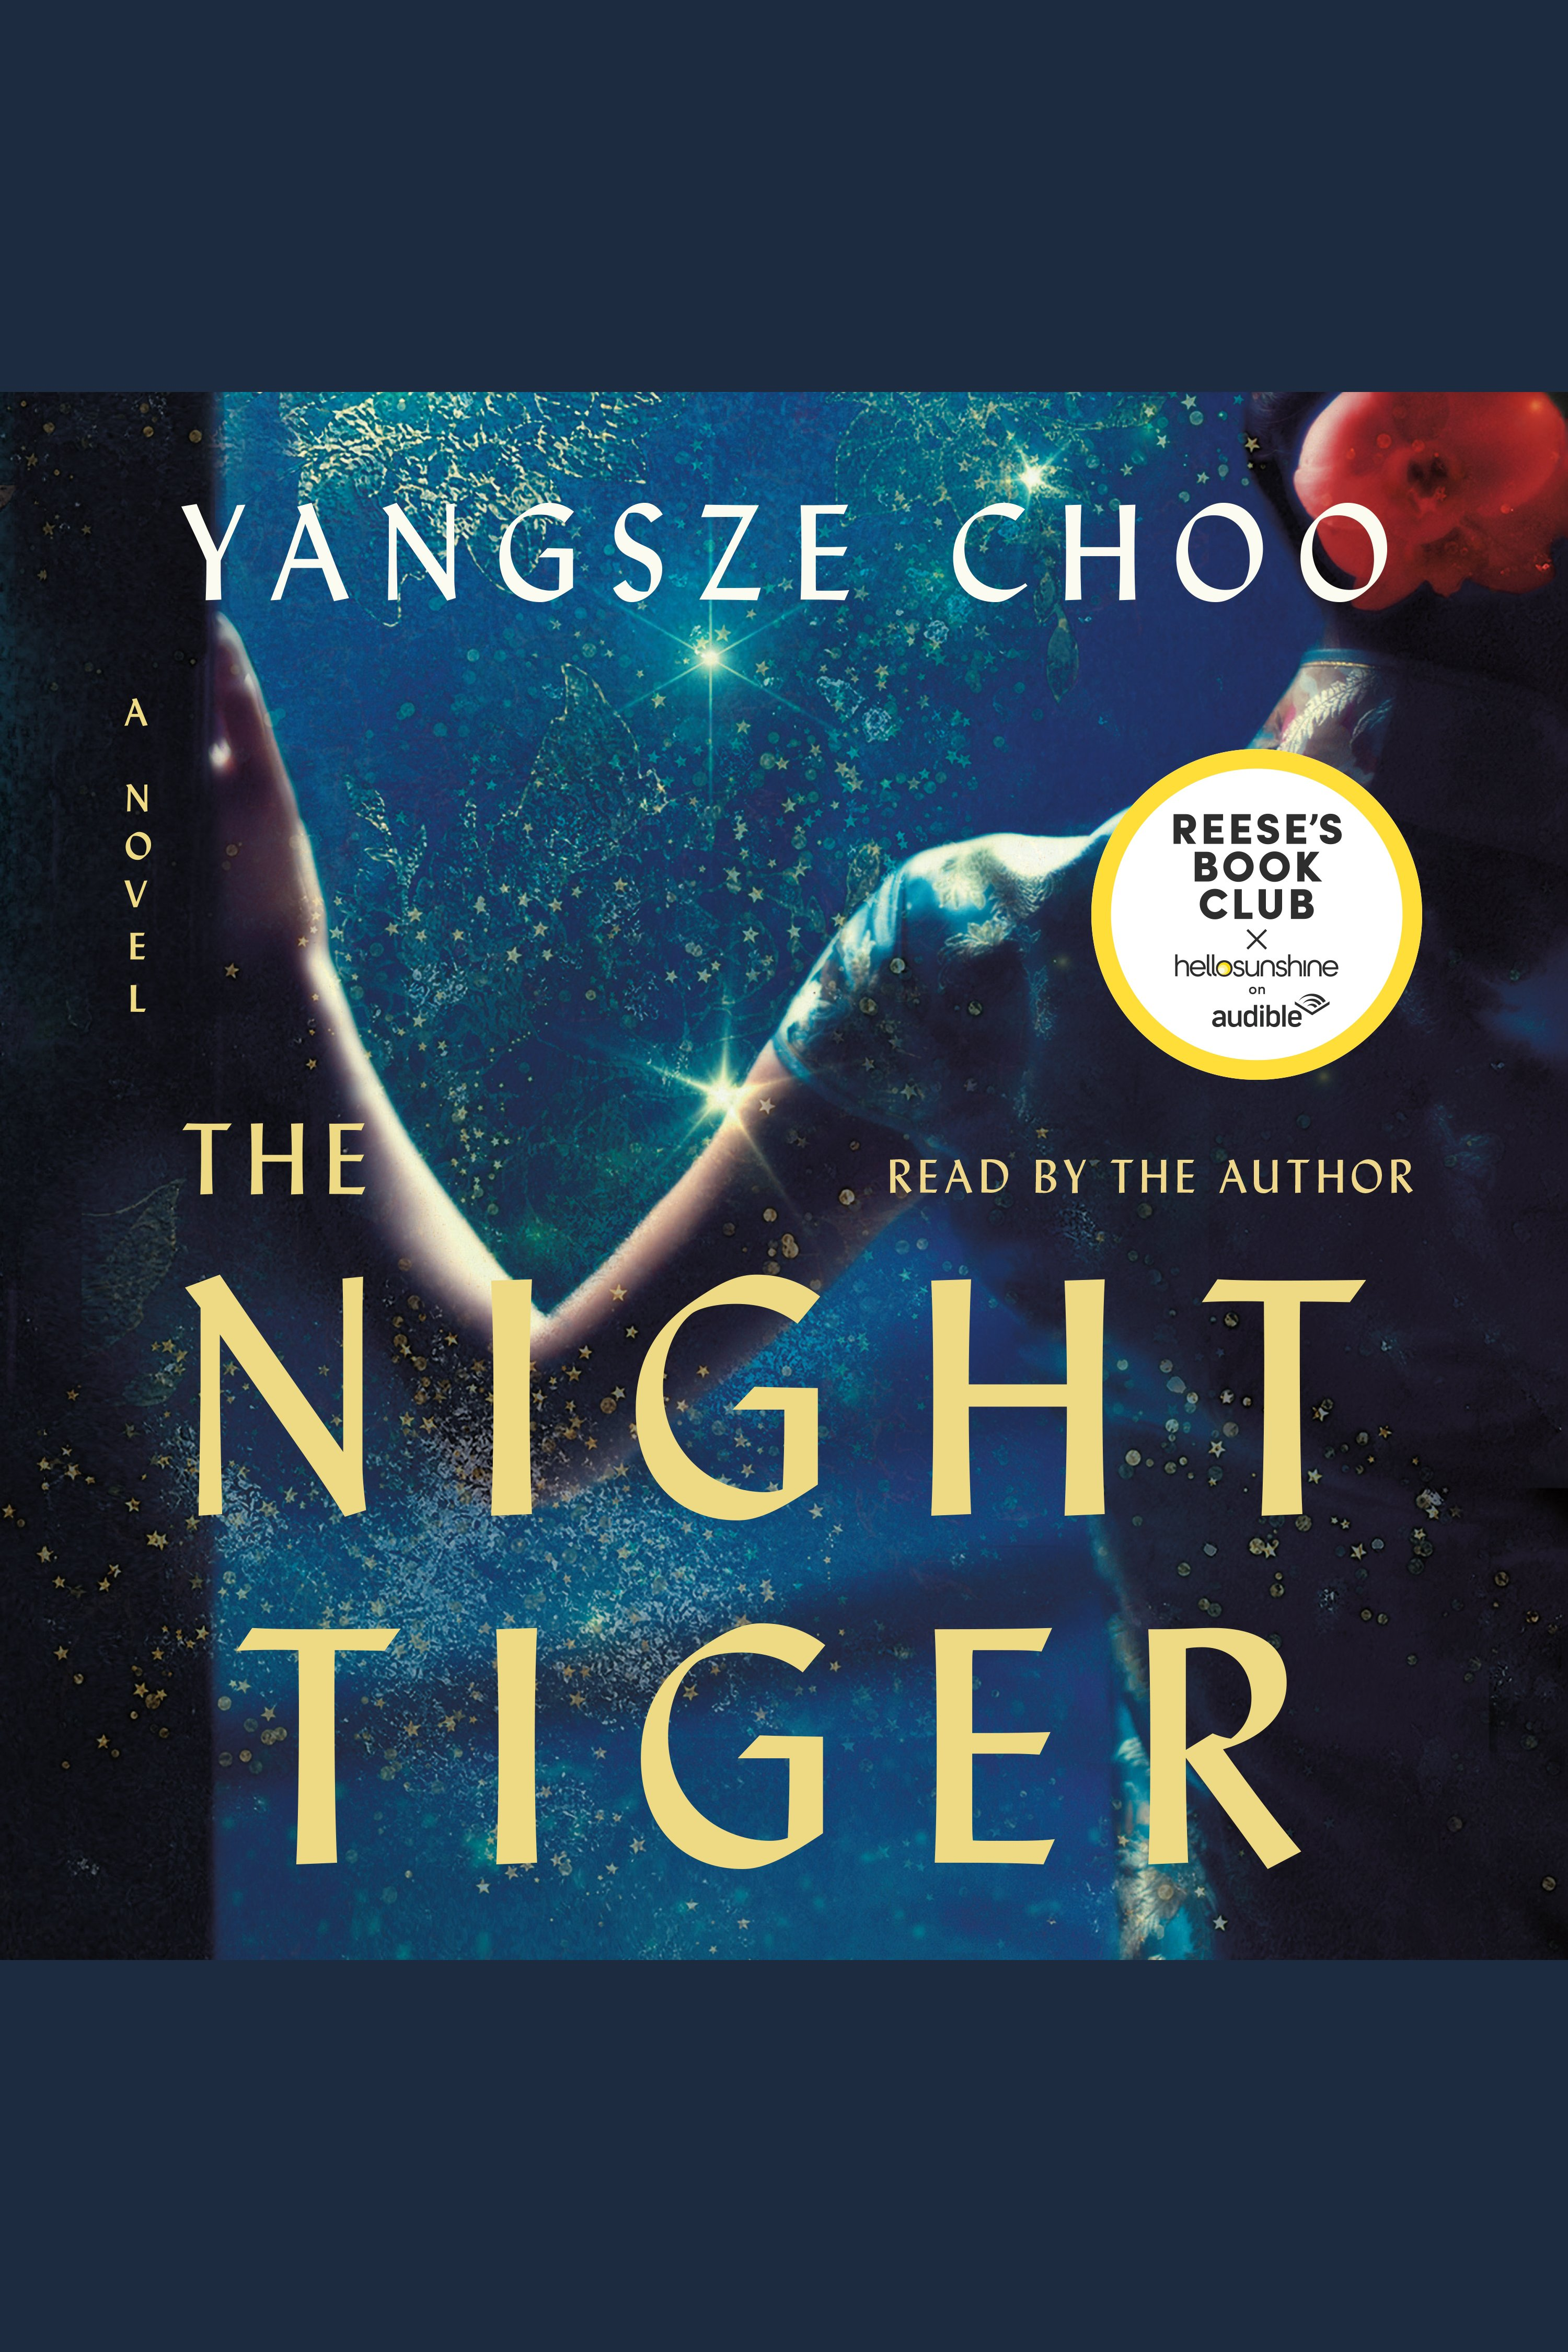 The night tiger [AudioEbook]